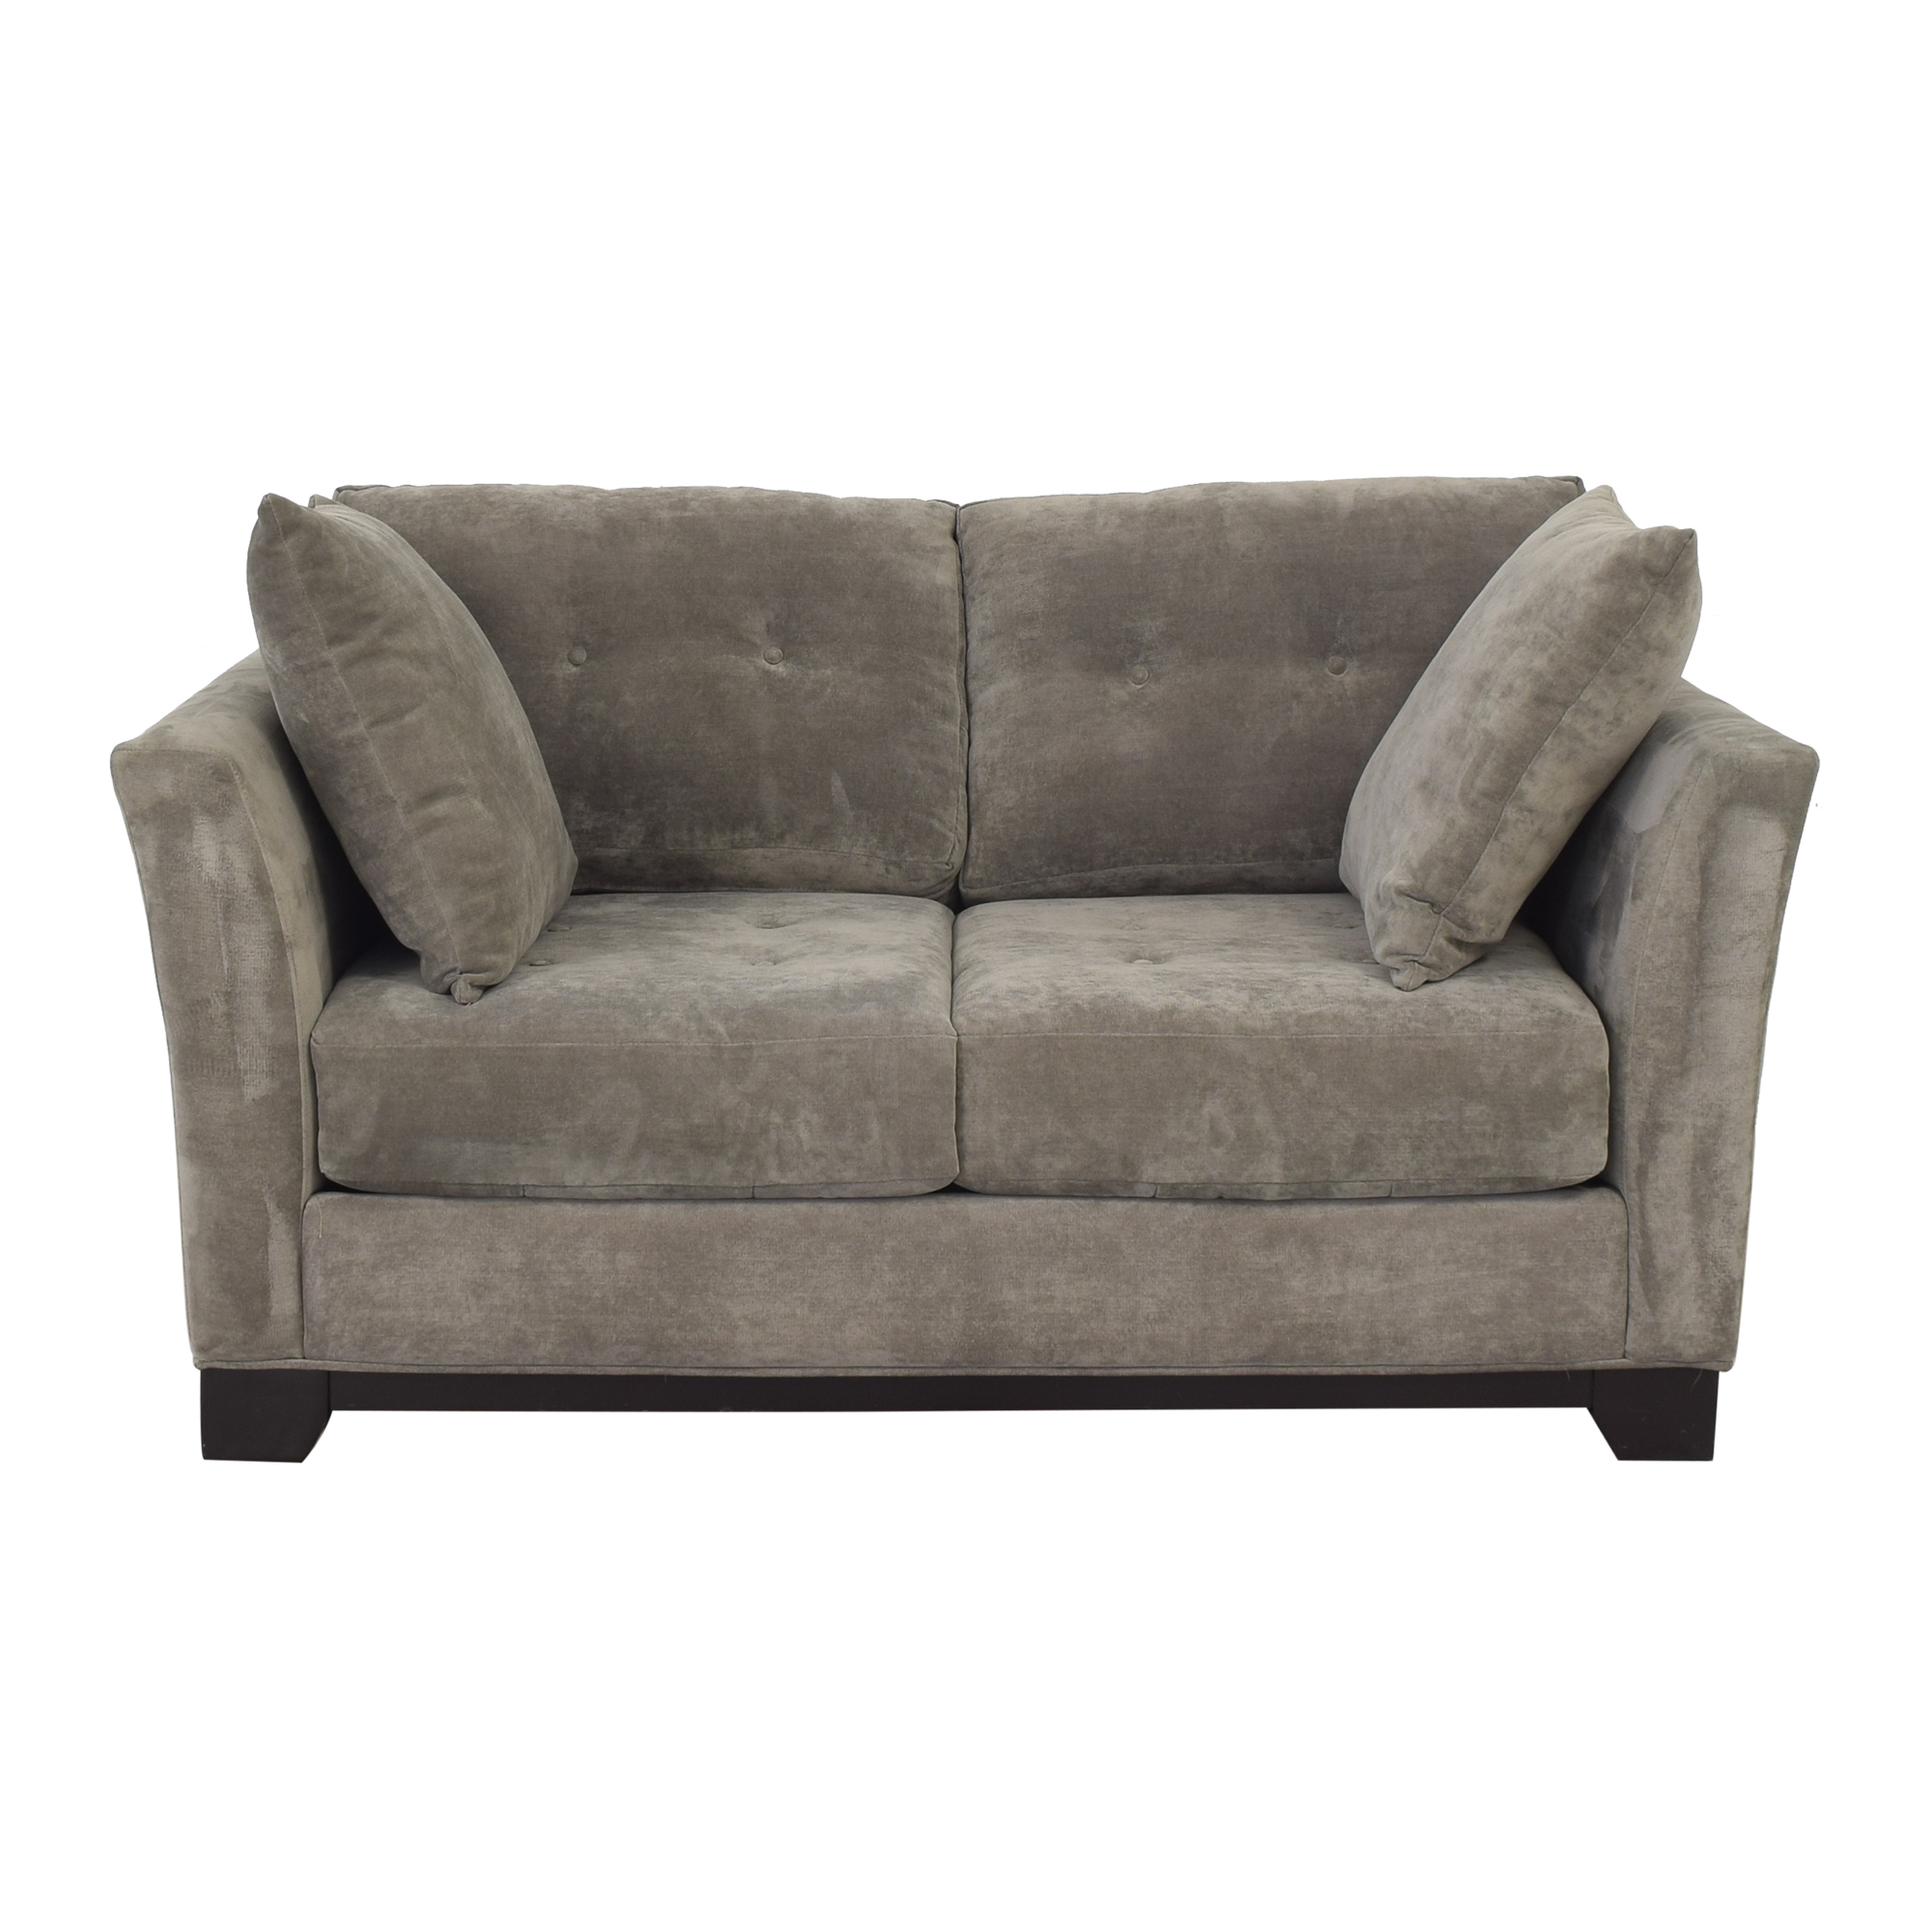 shop Macy's Elliot Tufted Loveseat Macy's